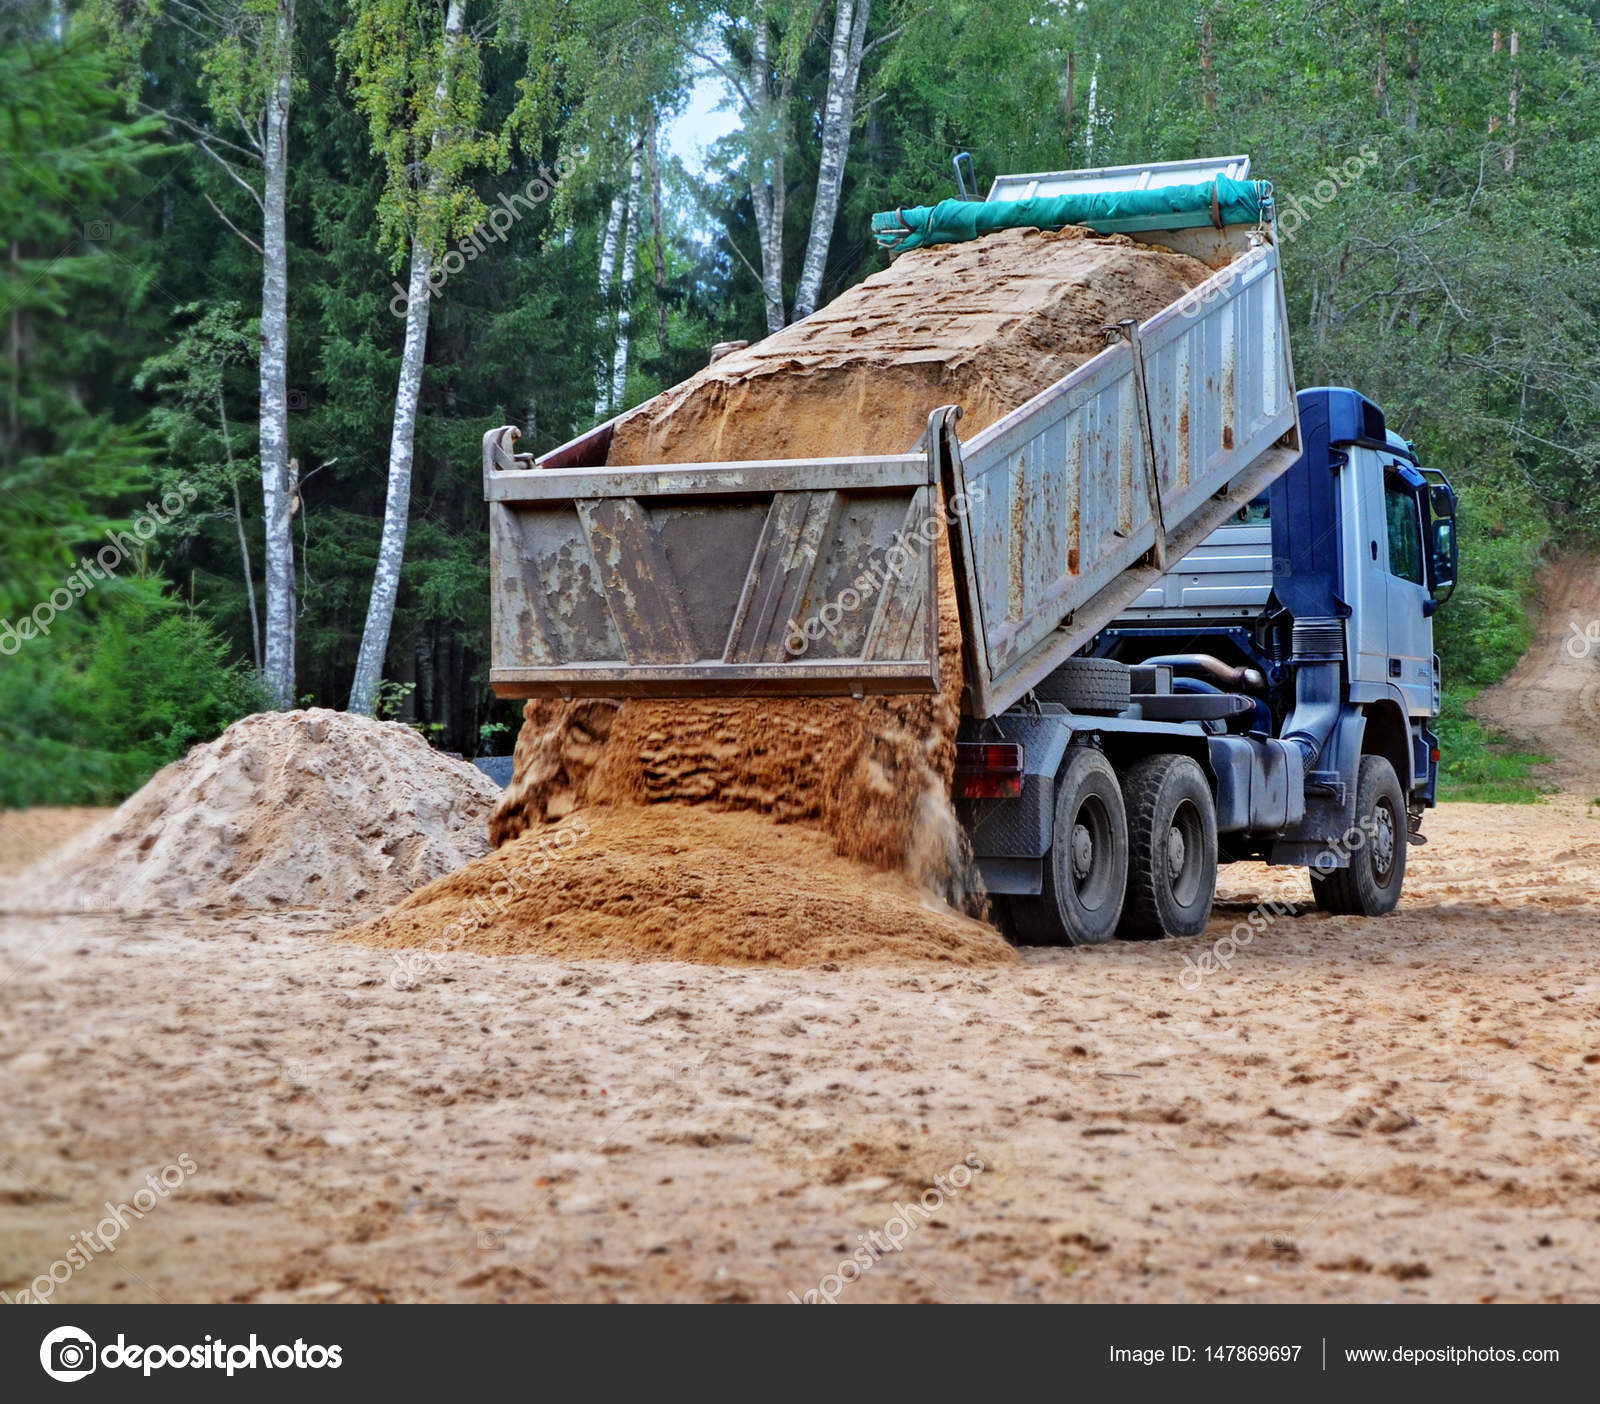 Blue Dump Truck With Hoisted Body Unloads Sand On The Building Site In Rural Areas Photo By Ann0305